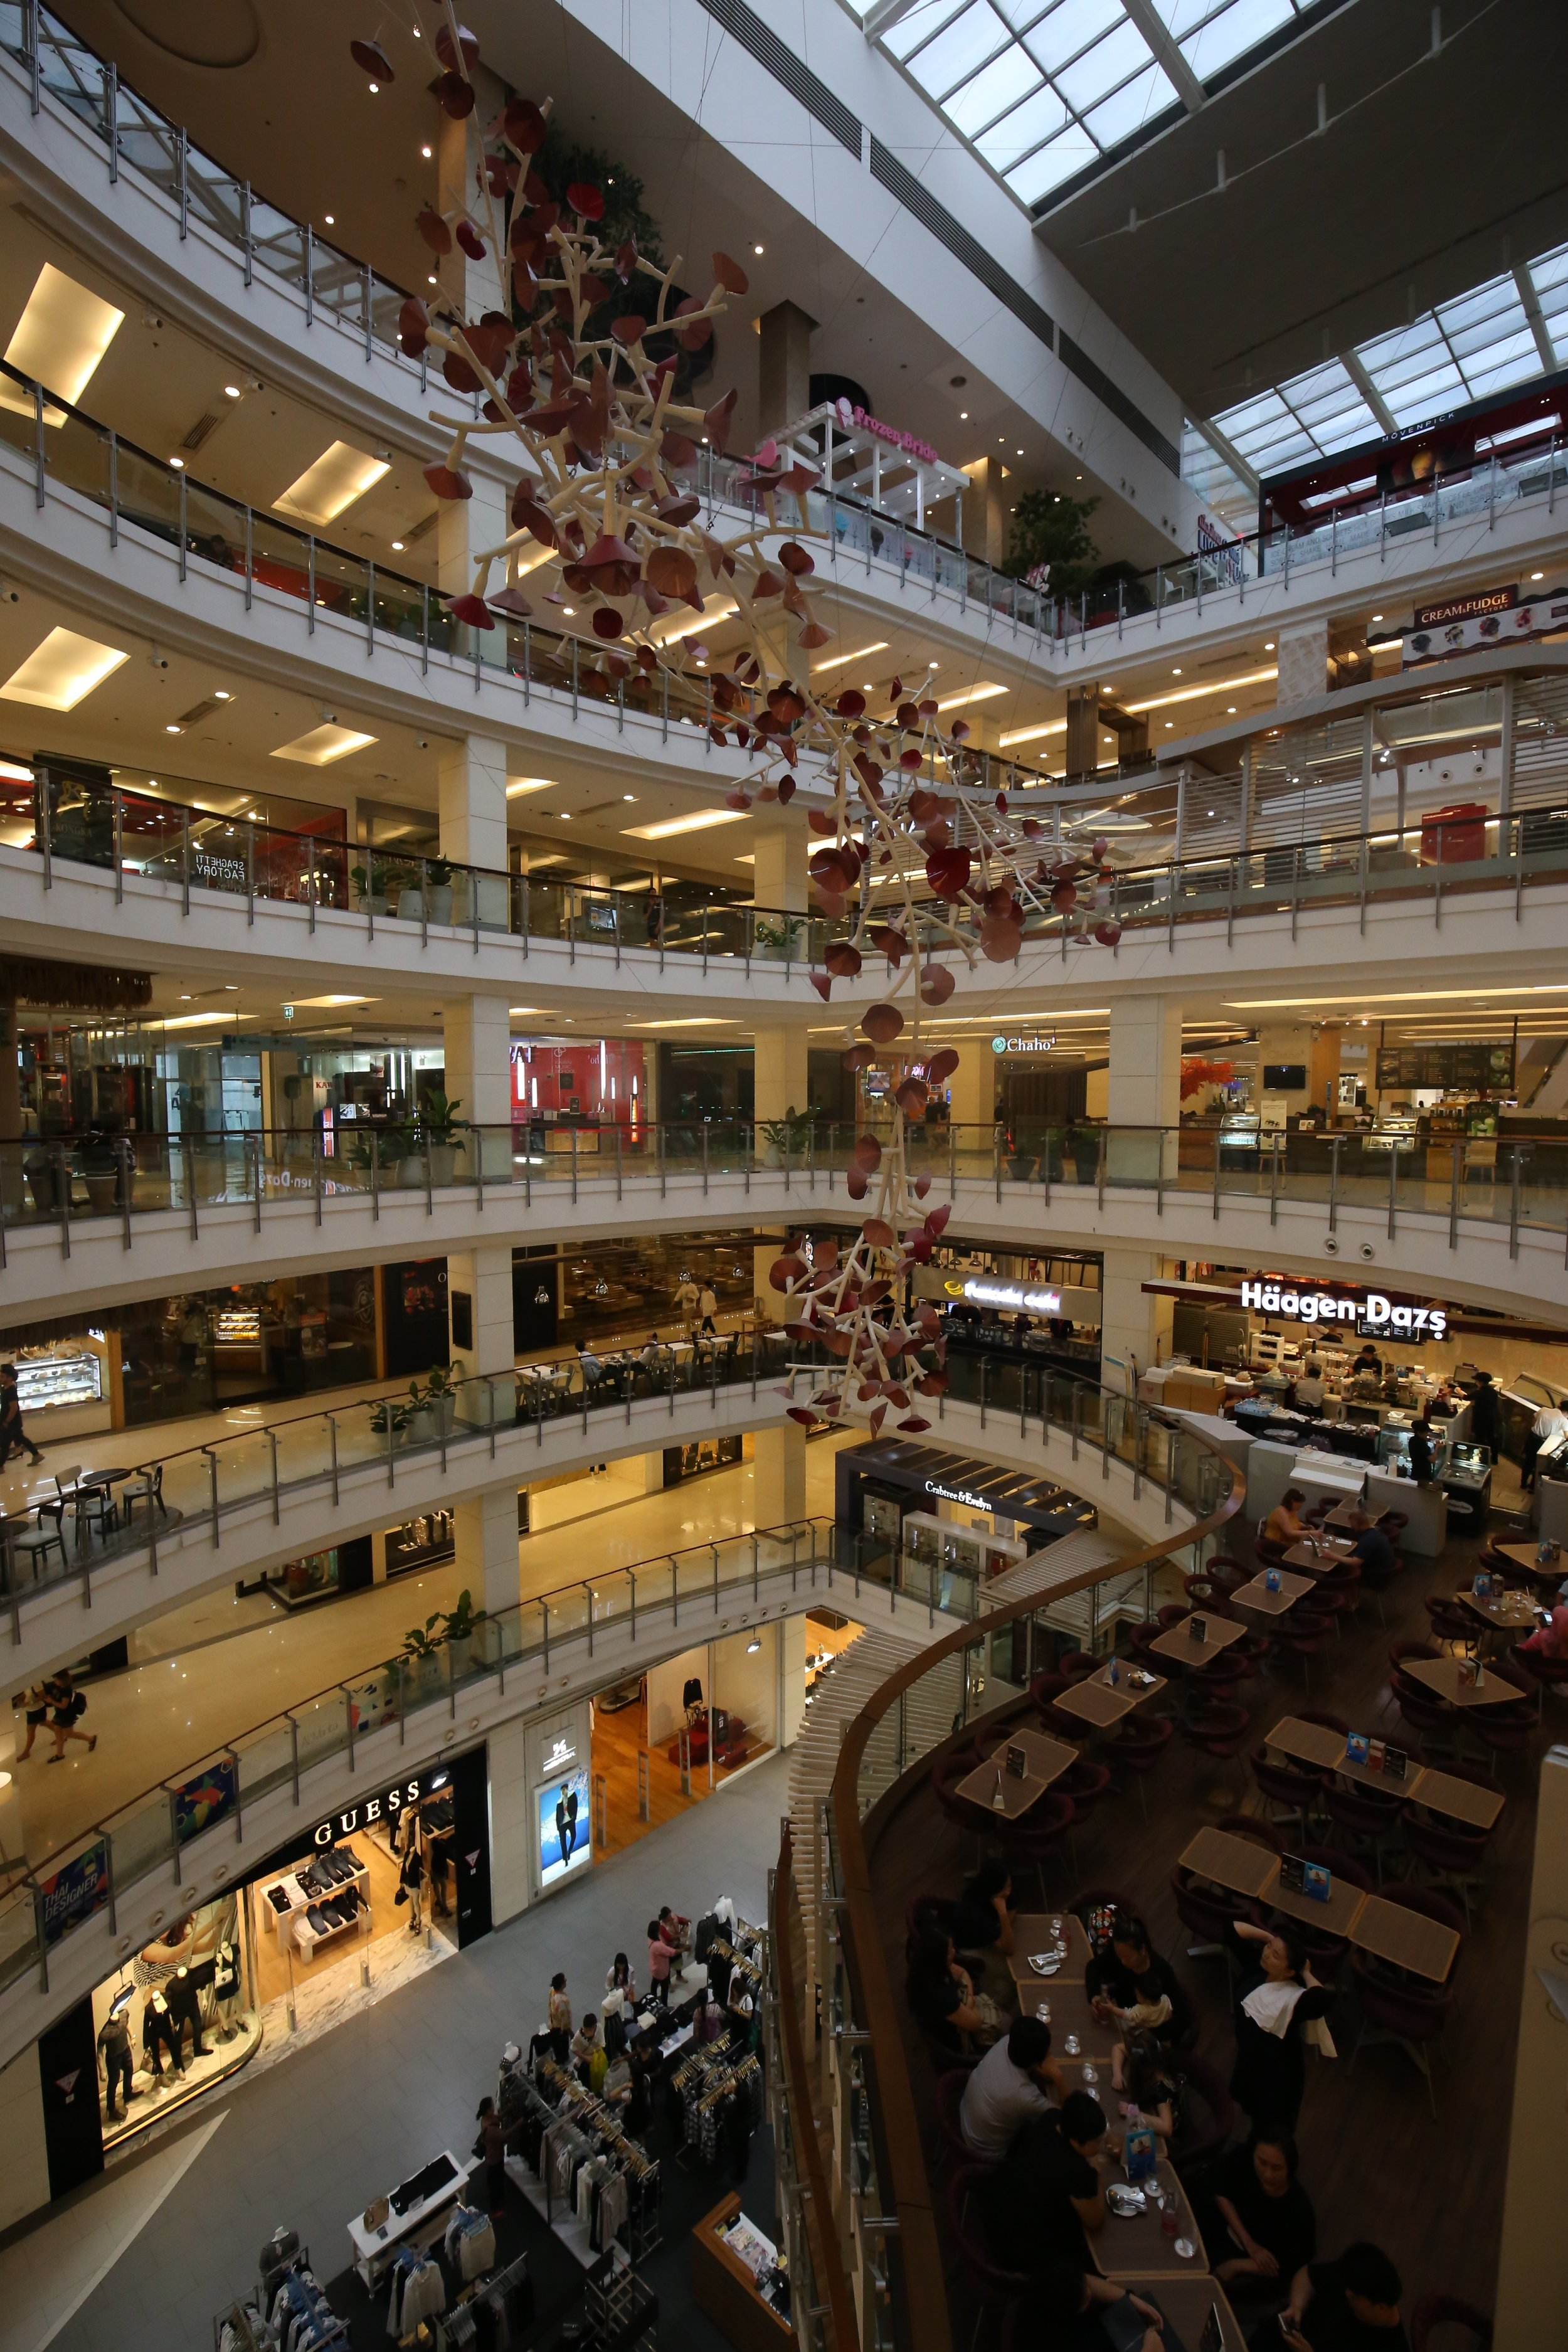 bangkok has SO many large malls like this that house not only a ton of high end shopping options, but so many yummy restaurants and places to rest in the AC.